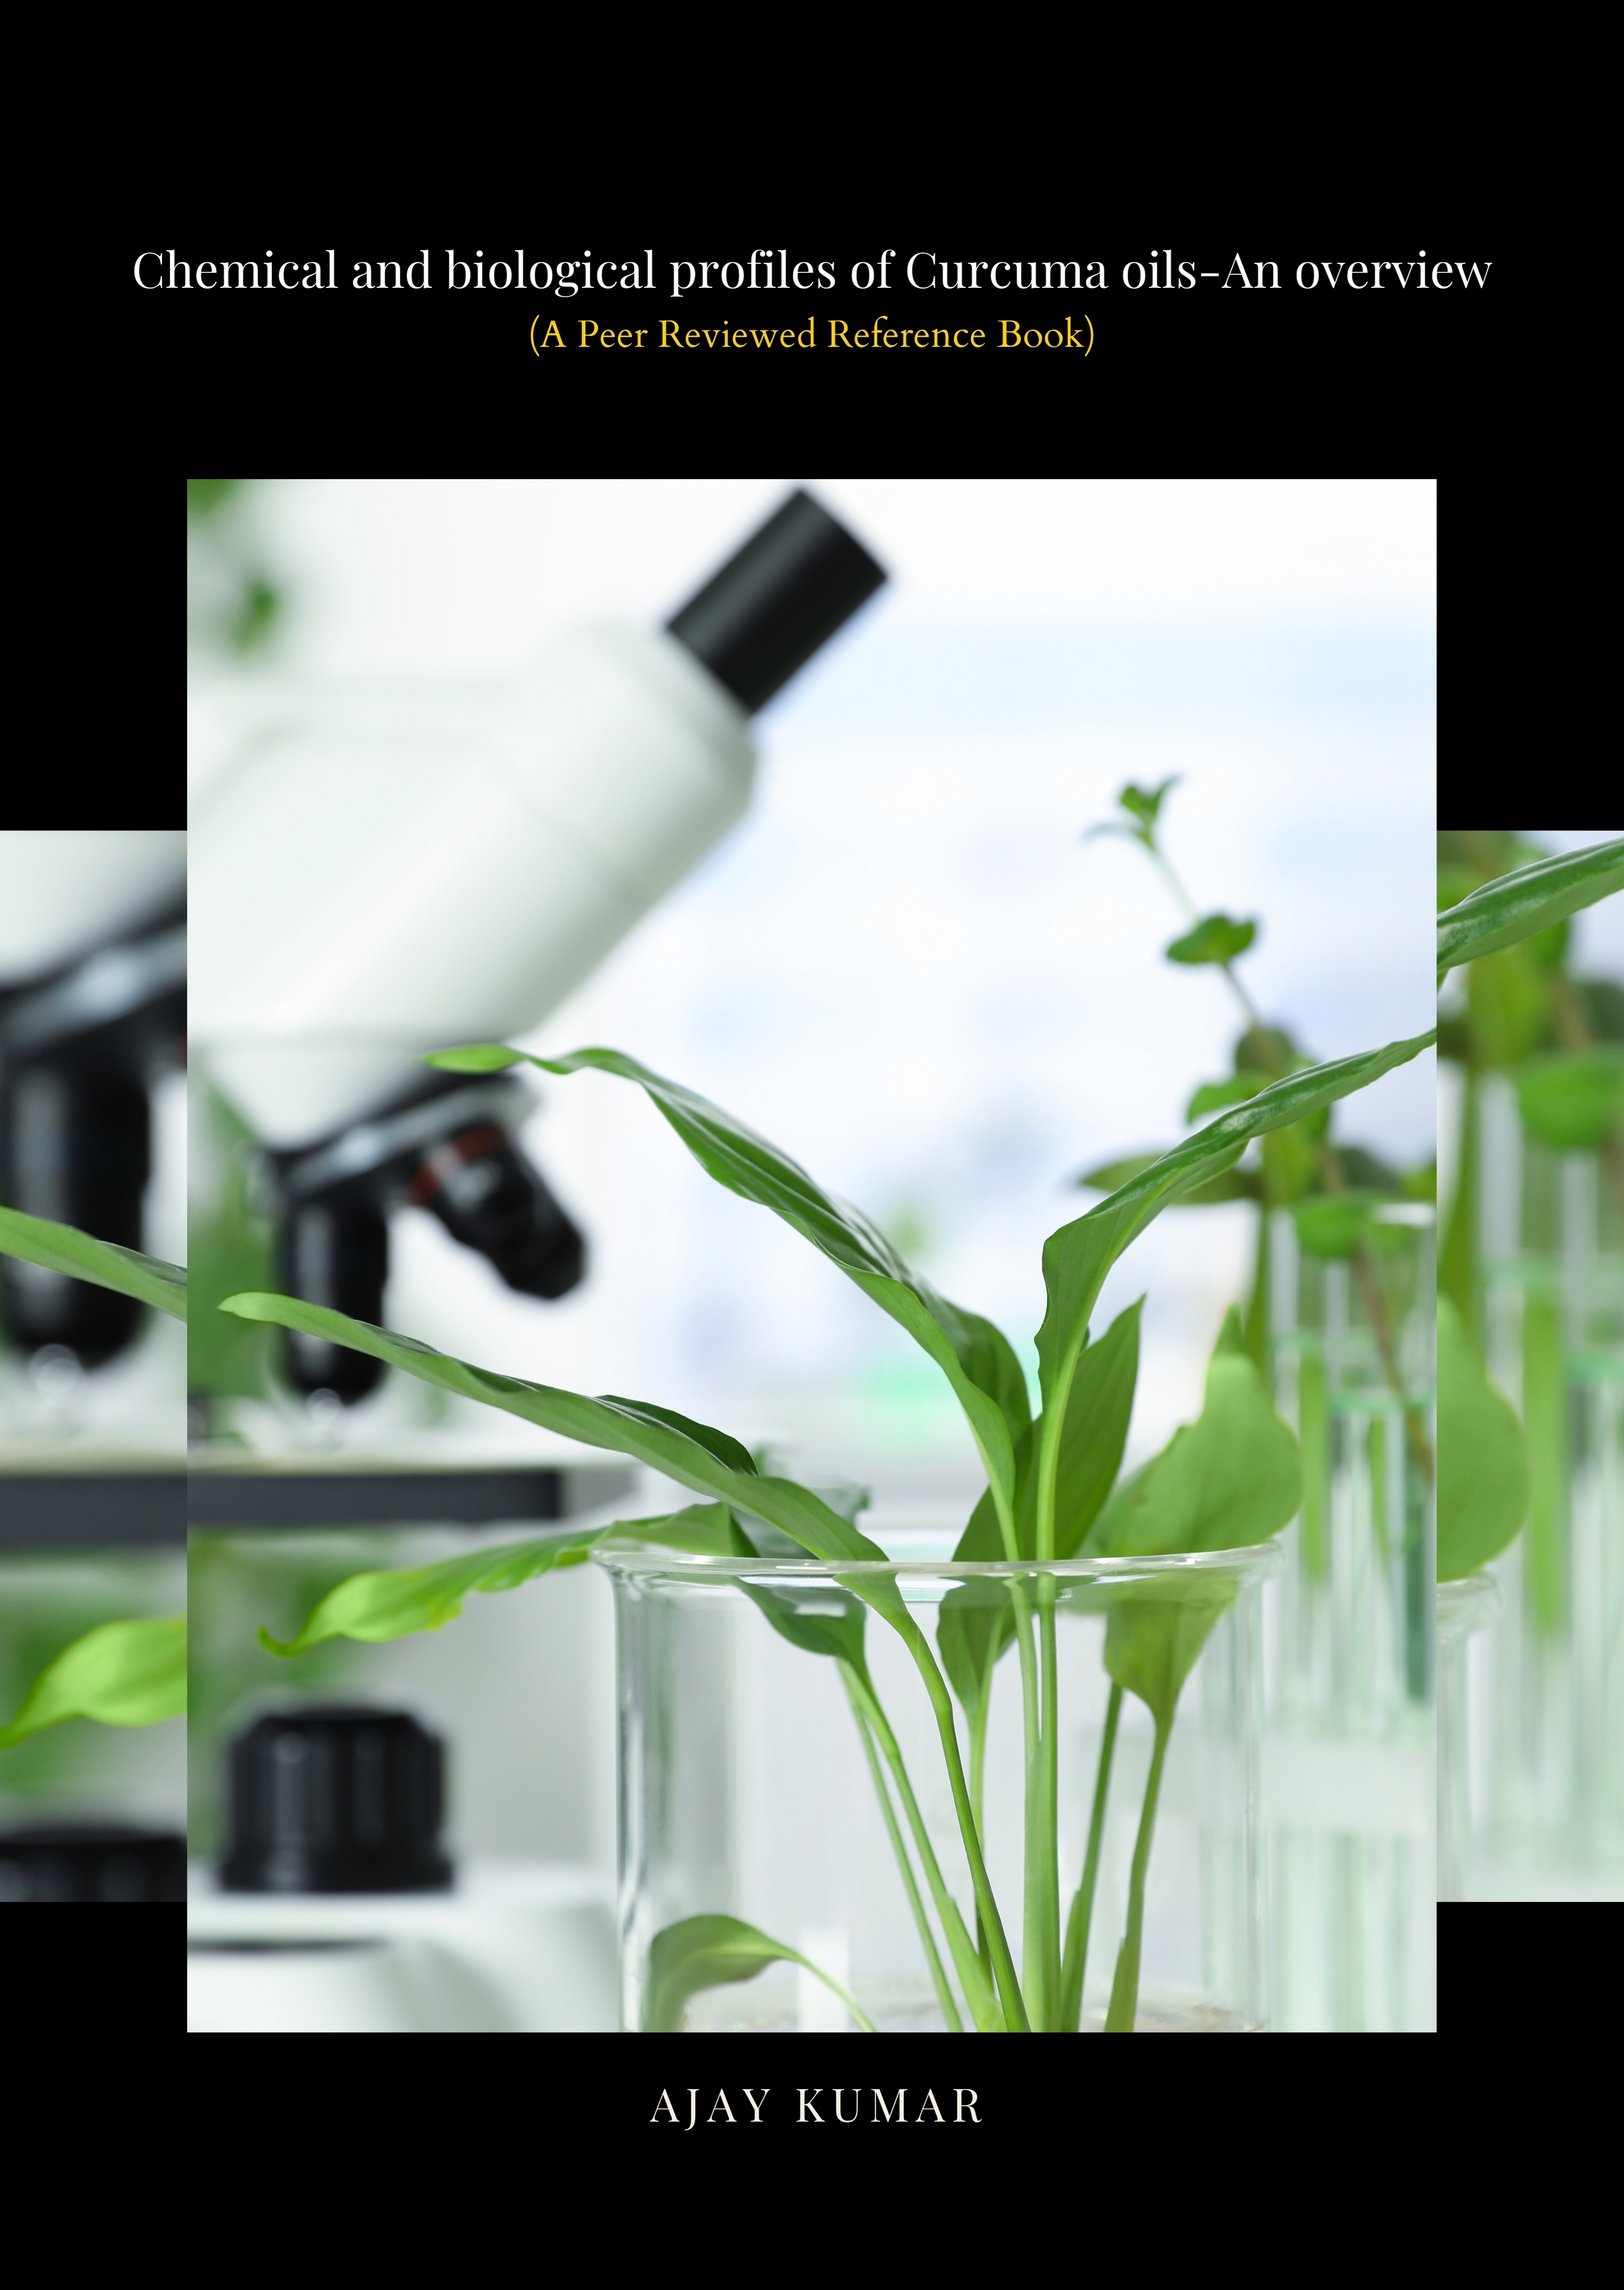 Chemical and biological profiles of Curcuma oils - An overview (A Peer Reviewed Reference Book) - Front Cover